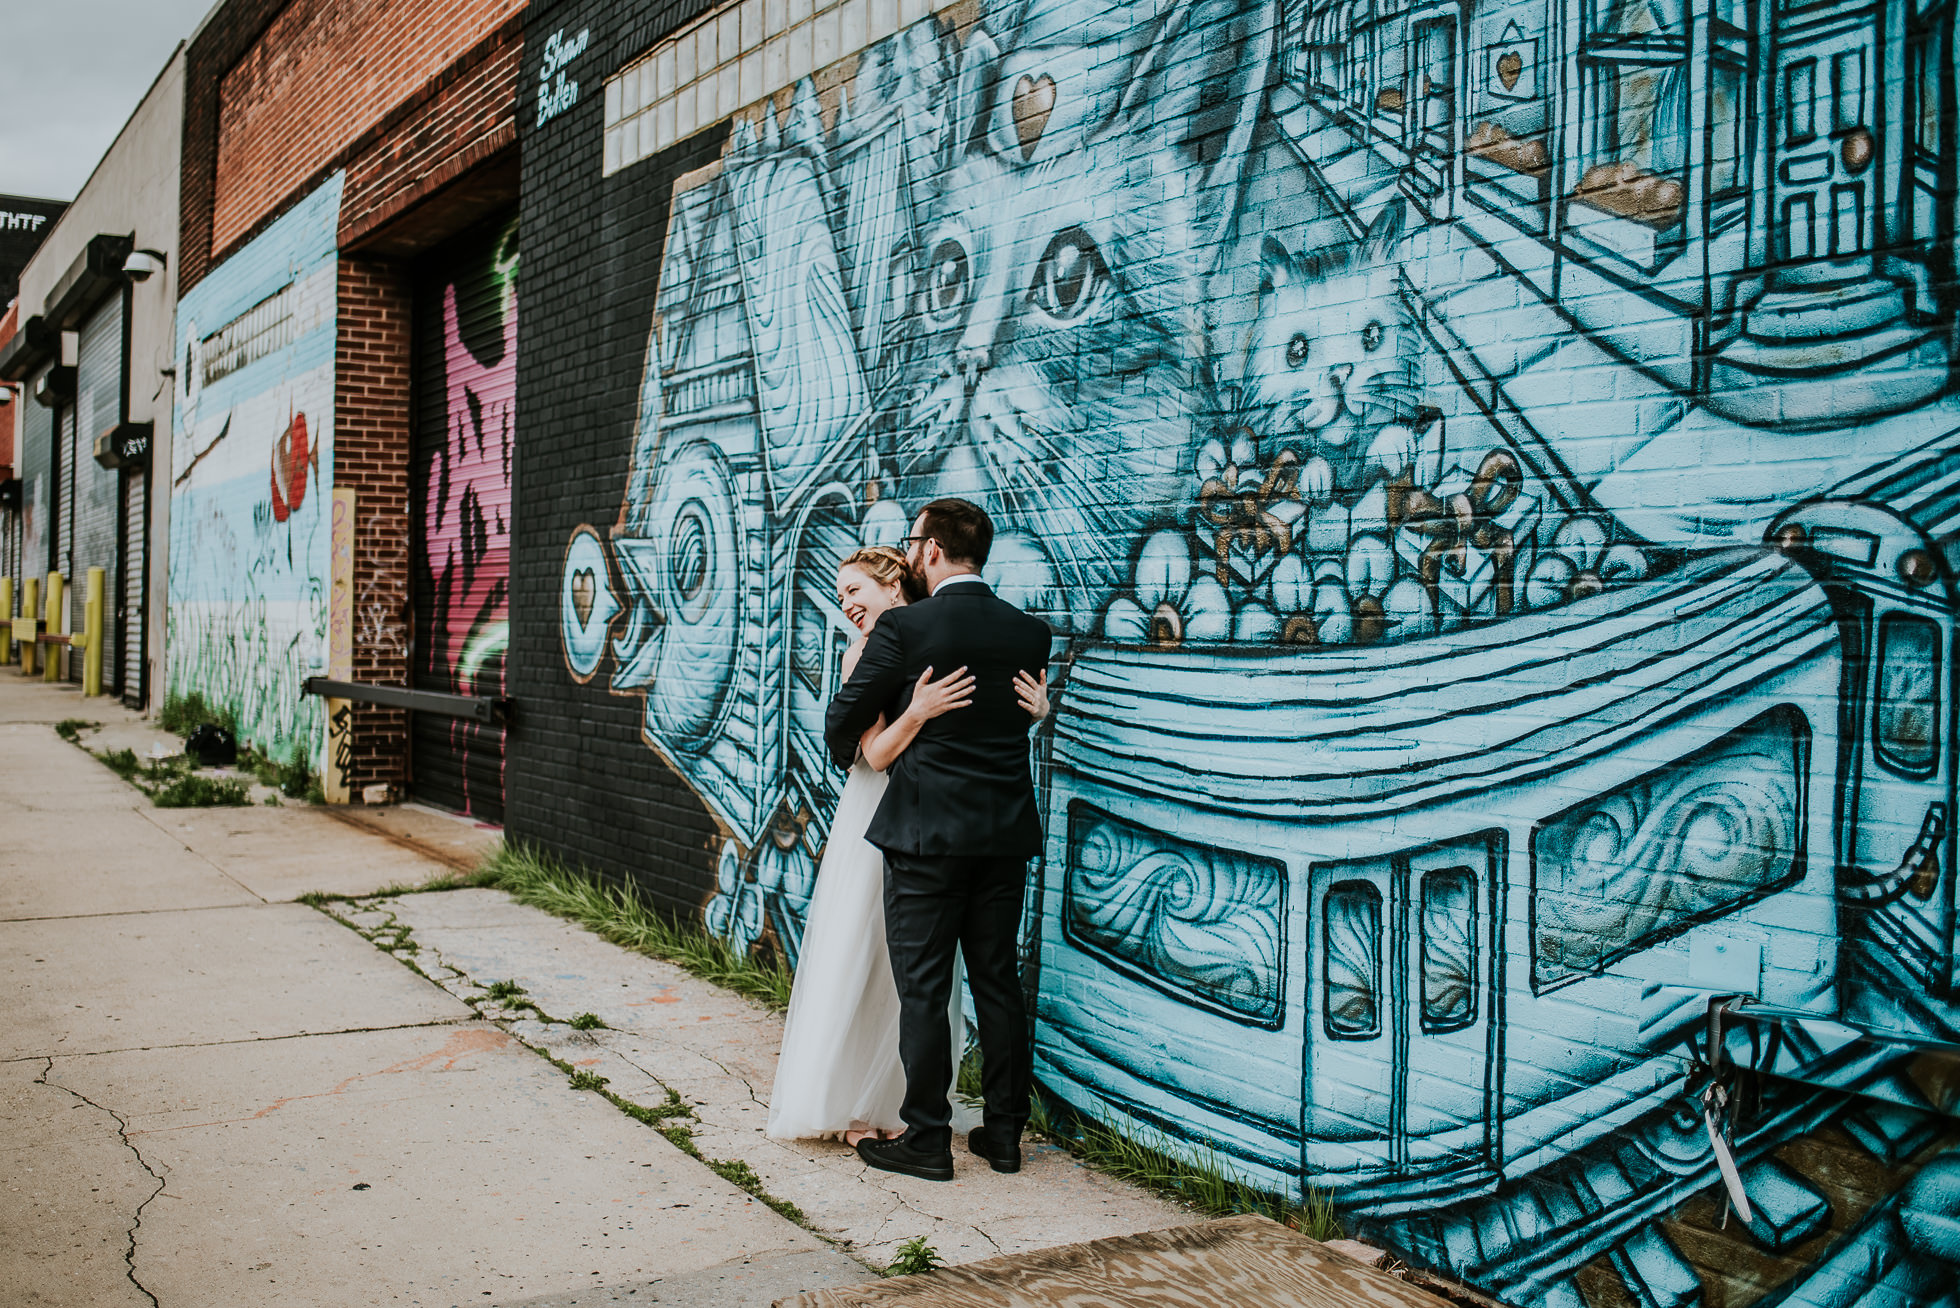 street art wedding photographed by Traverse The Tides